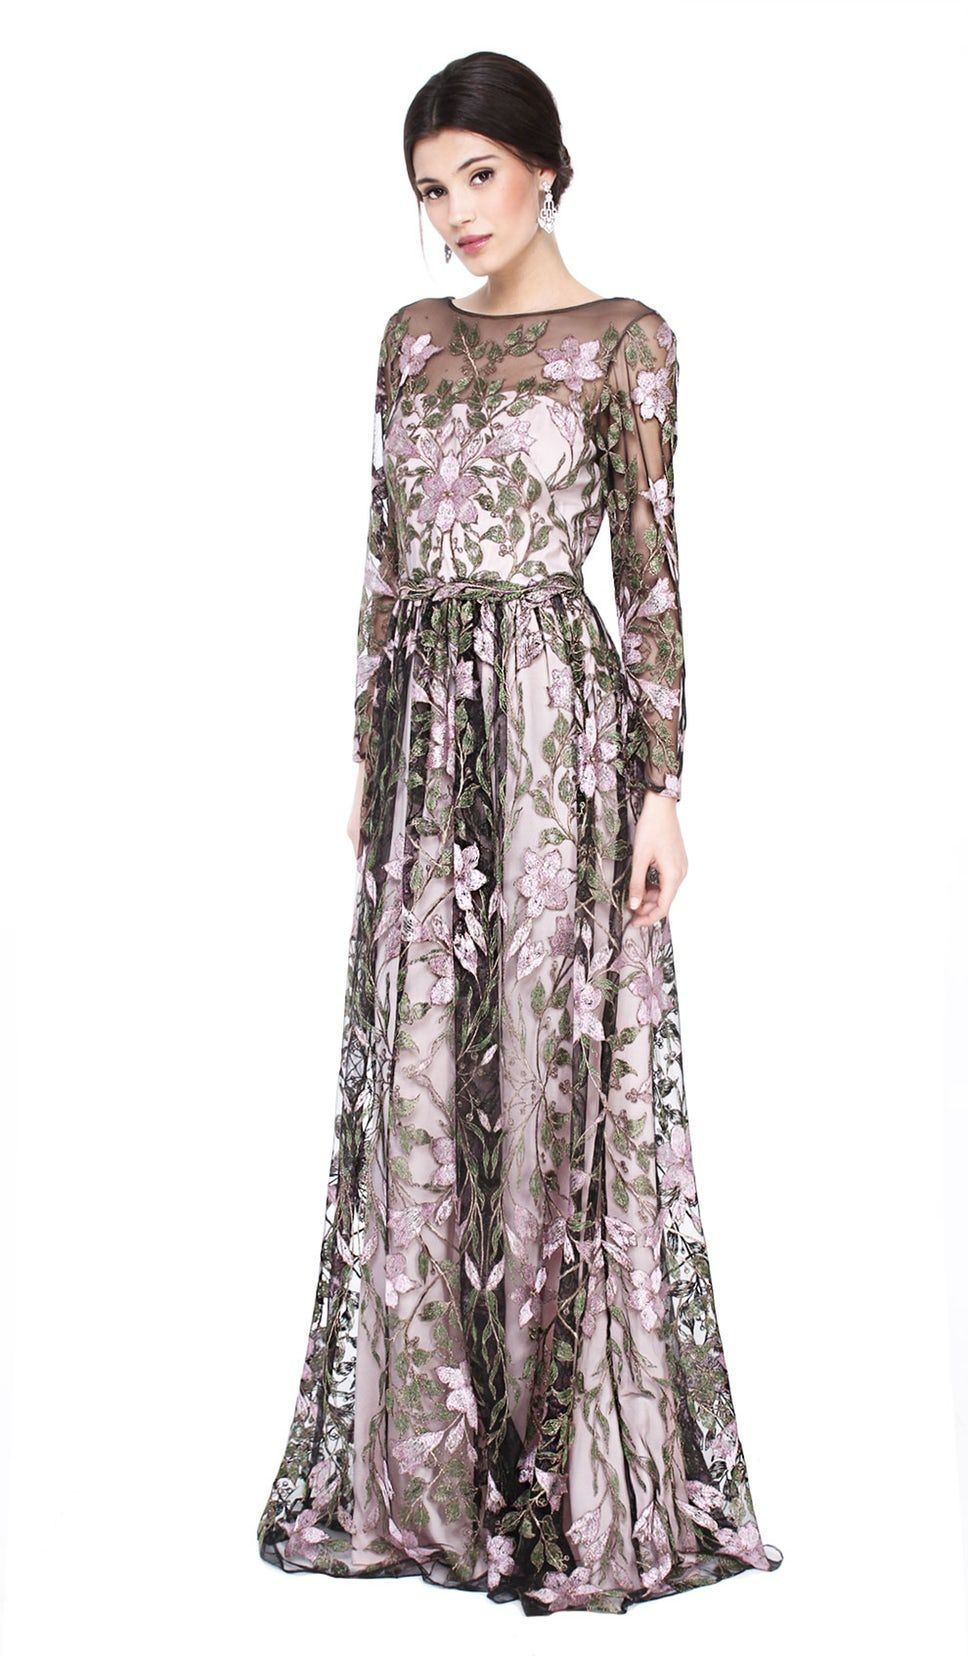 Rose and Green Floral Gown - Mieten Marchesa Notte Kleider ...